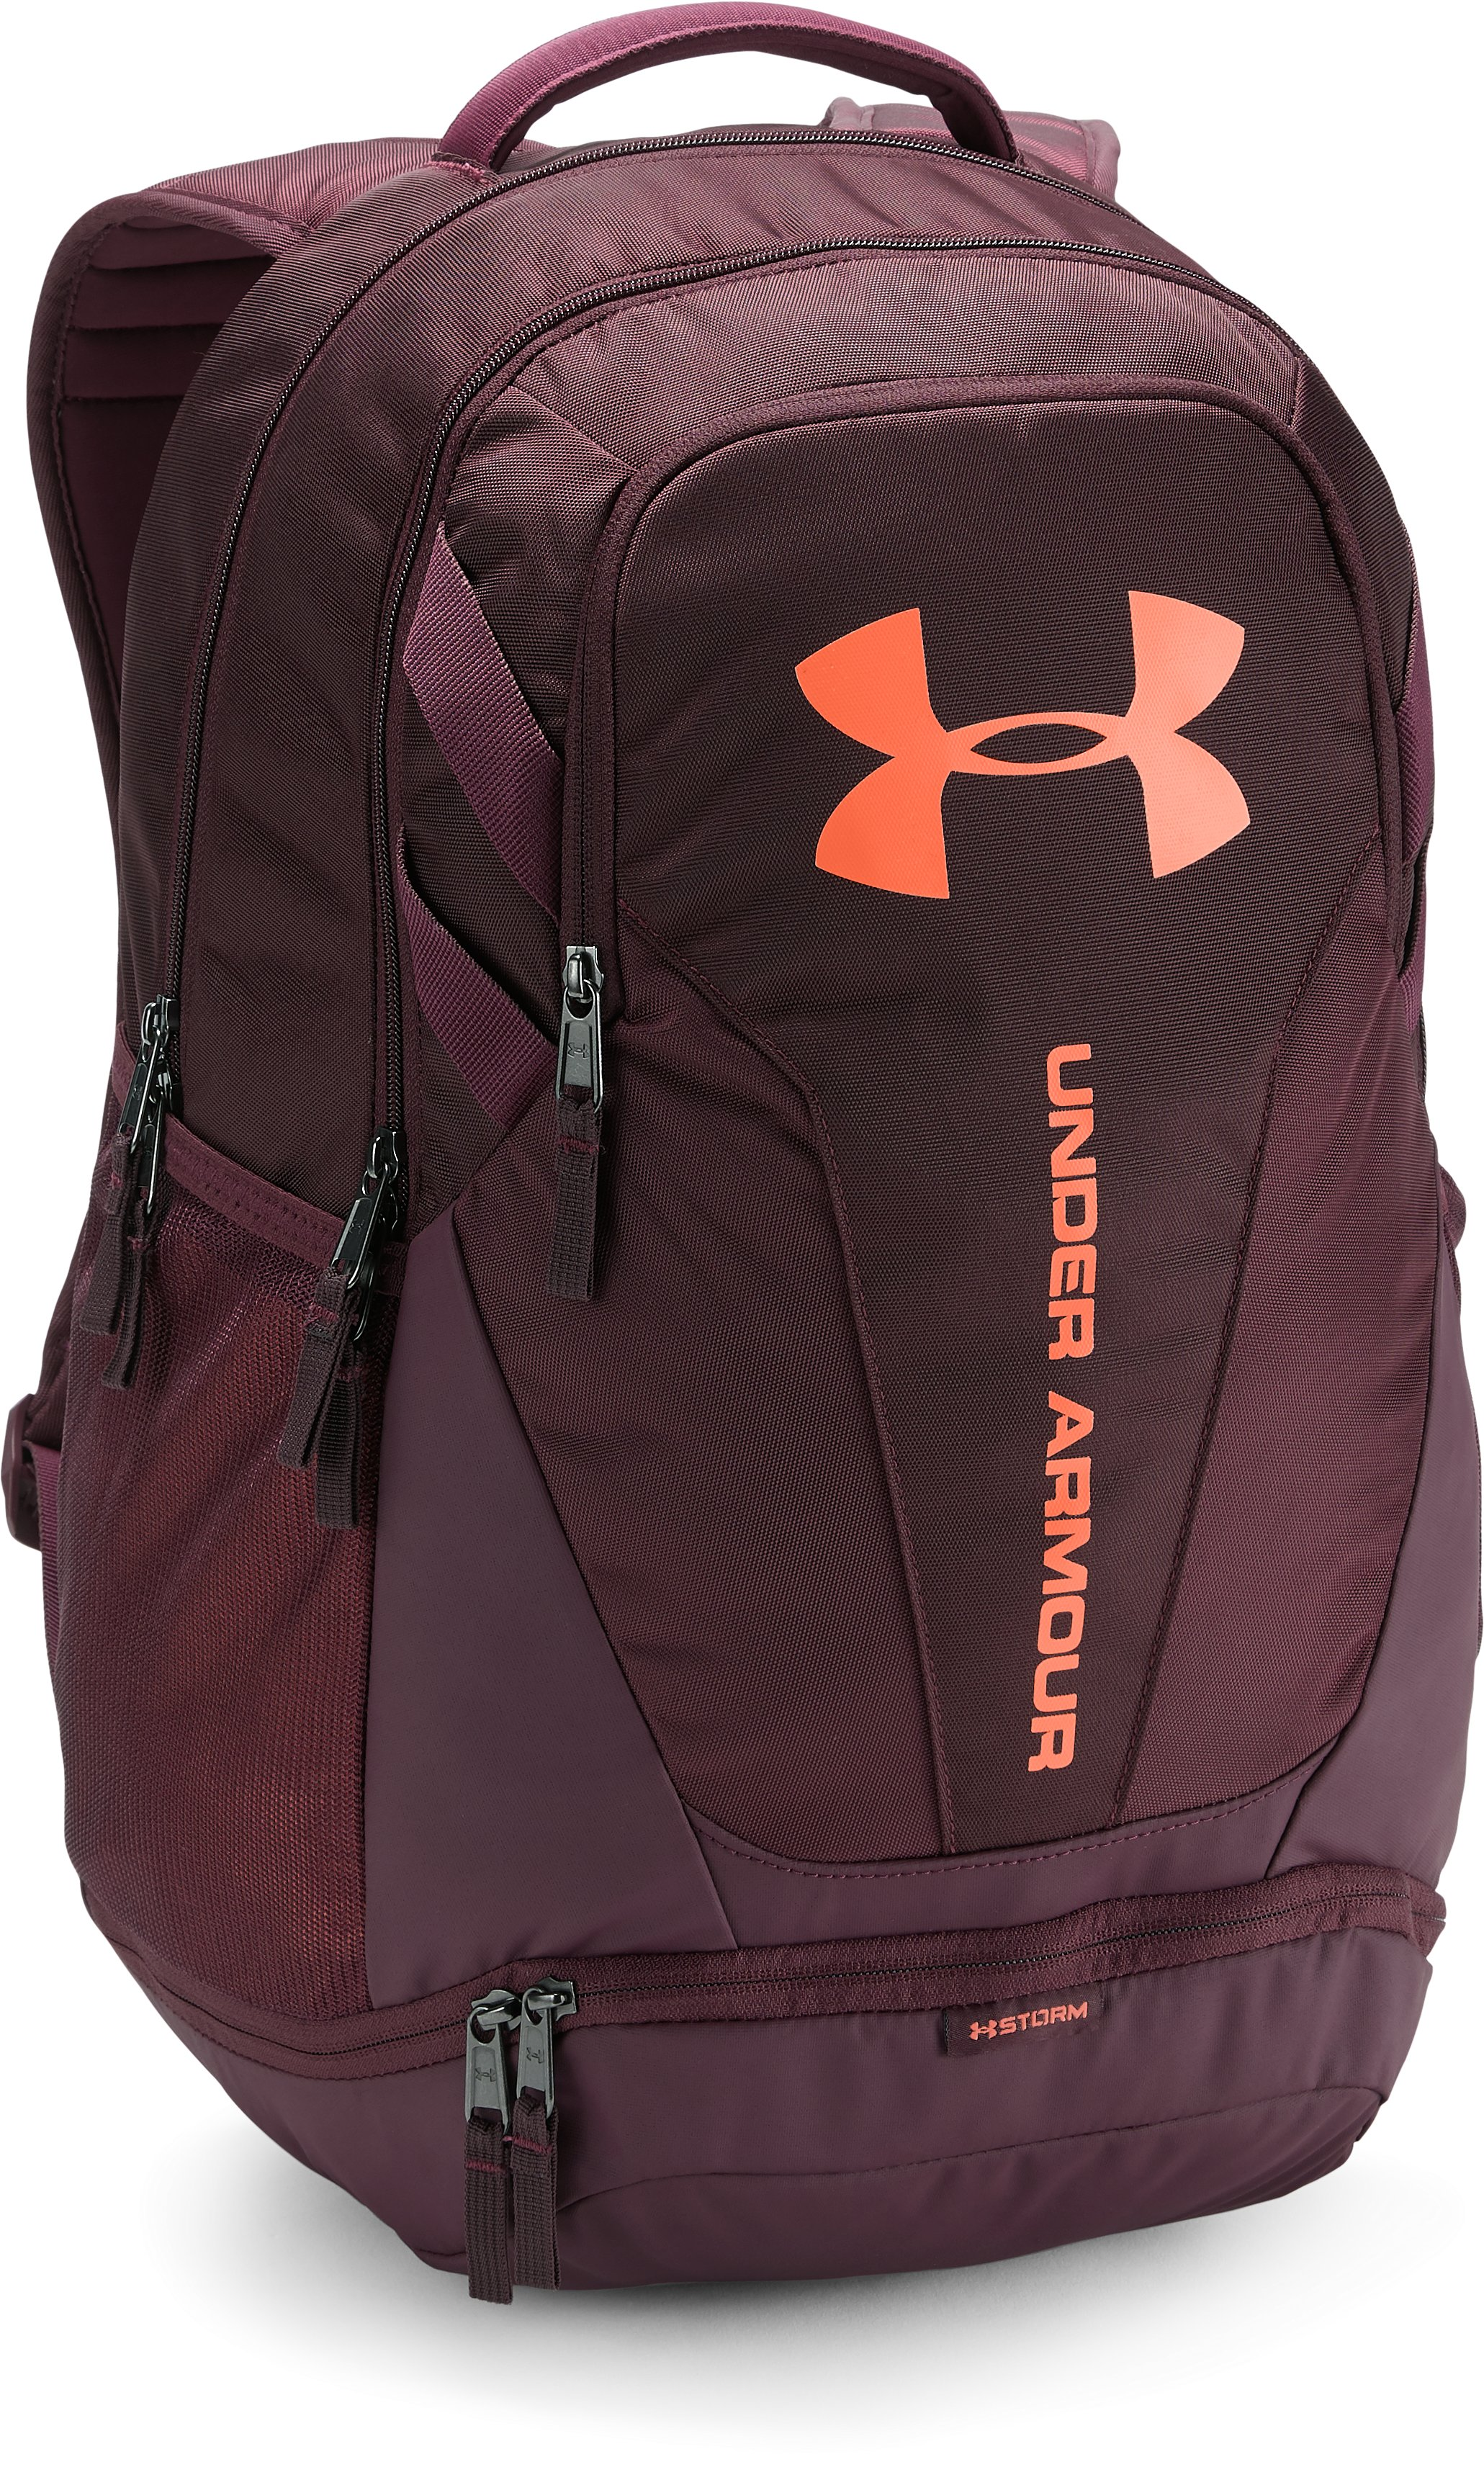 UA Hustle 3.0 Backpack, DARK MAROON